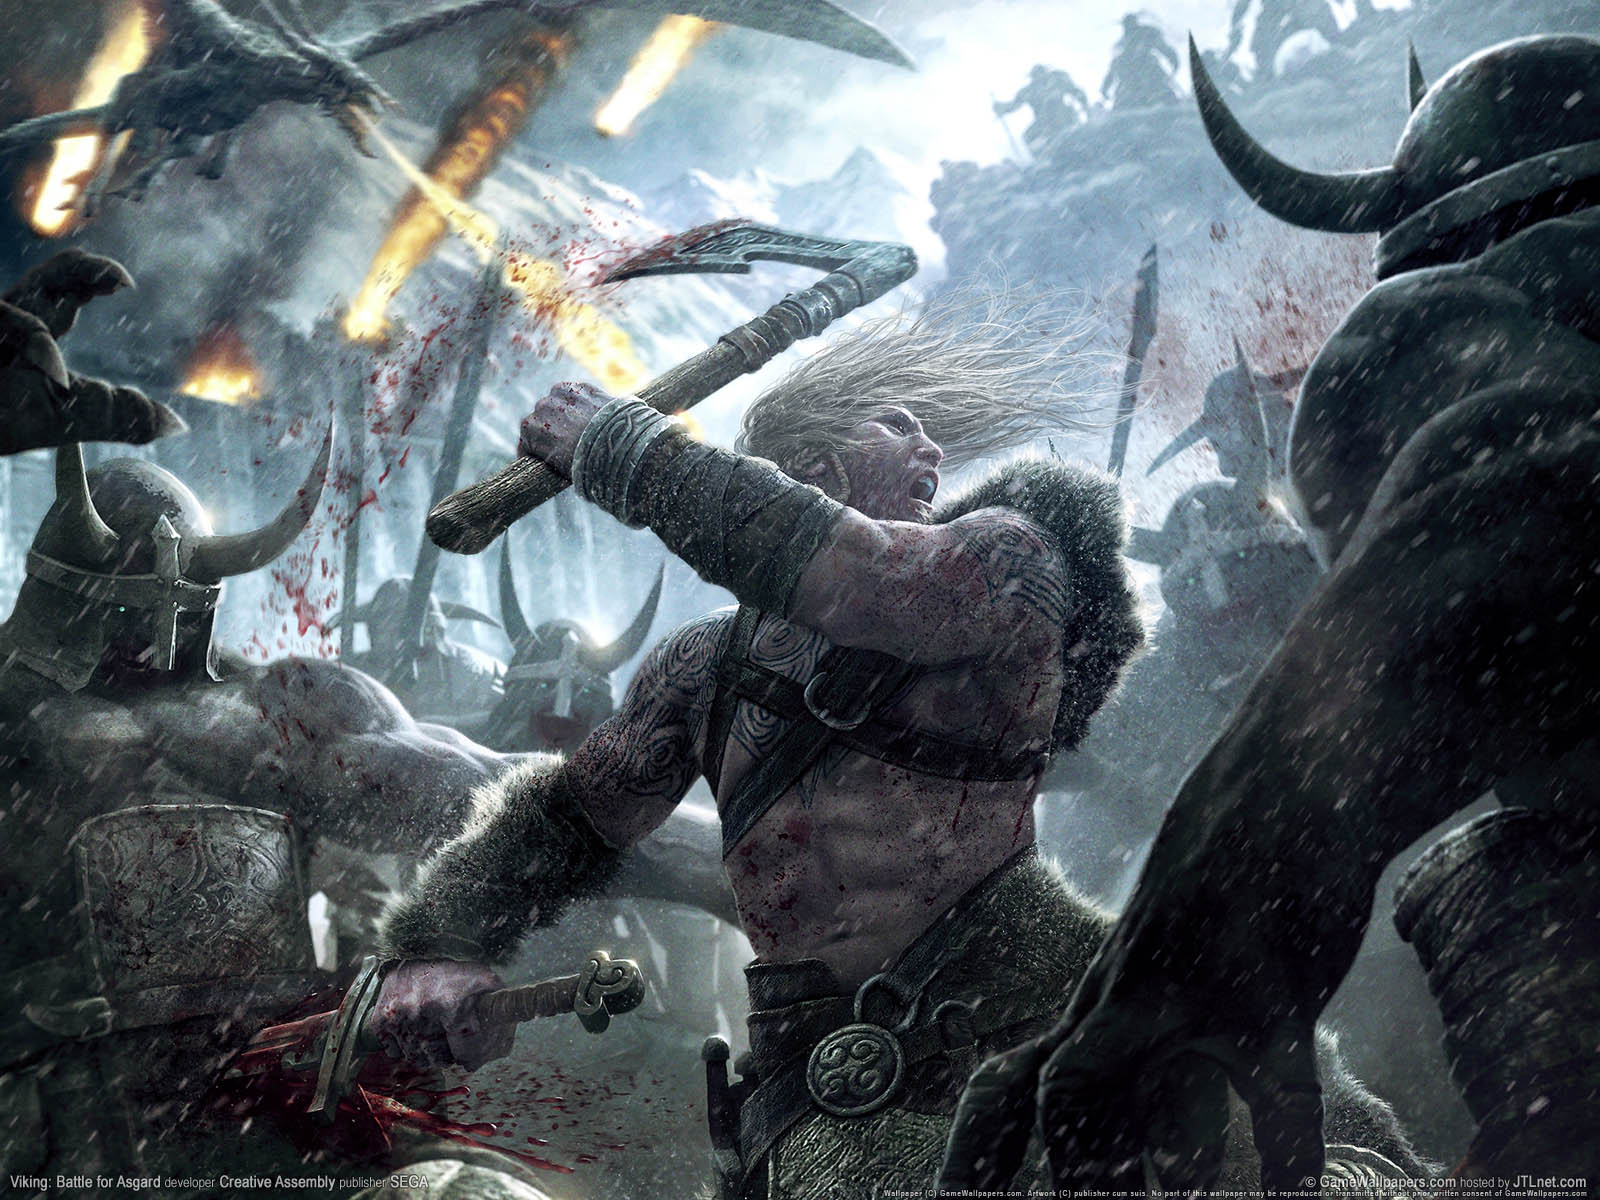 tK19yx4 cthh48 viking -battle-for-asgard-wallpap